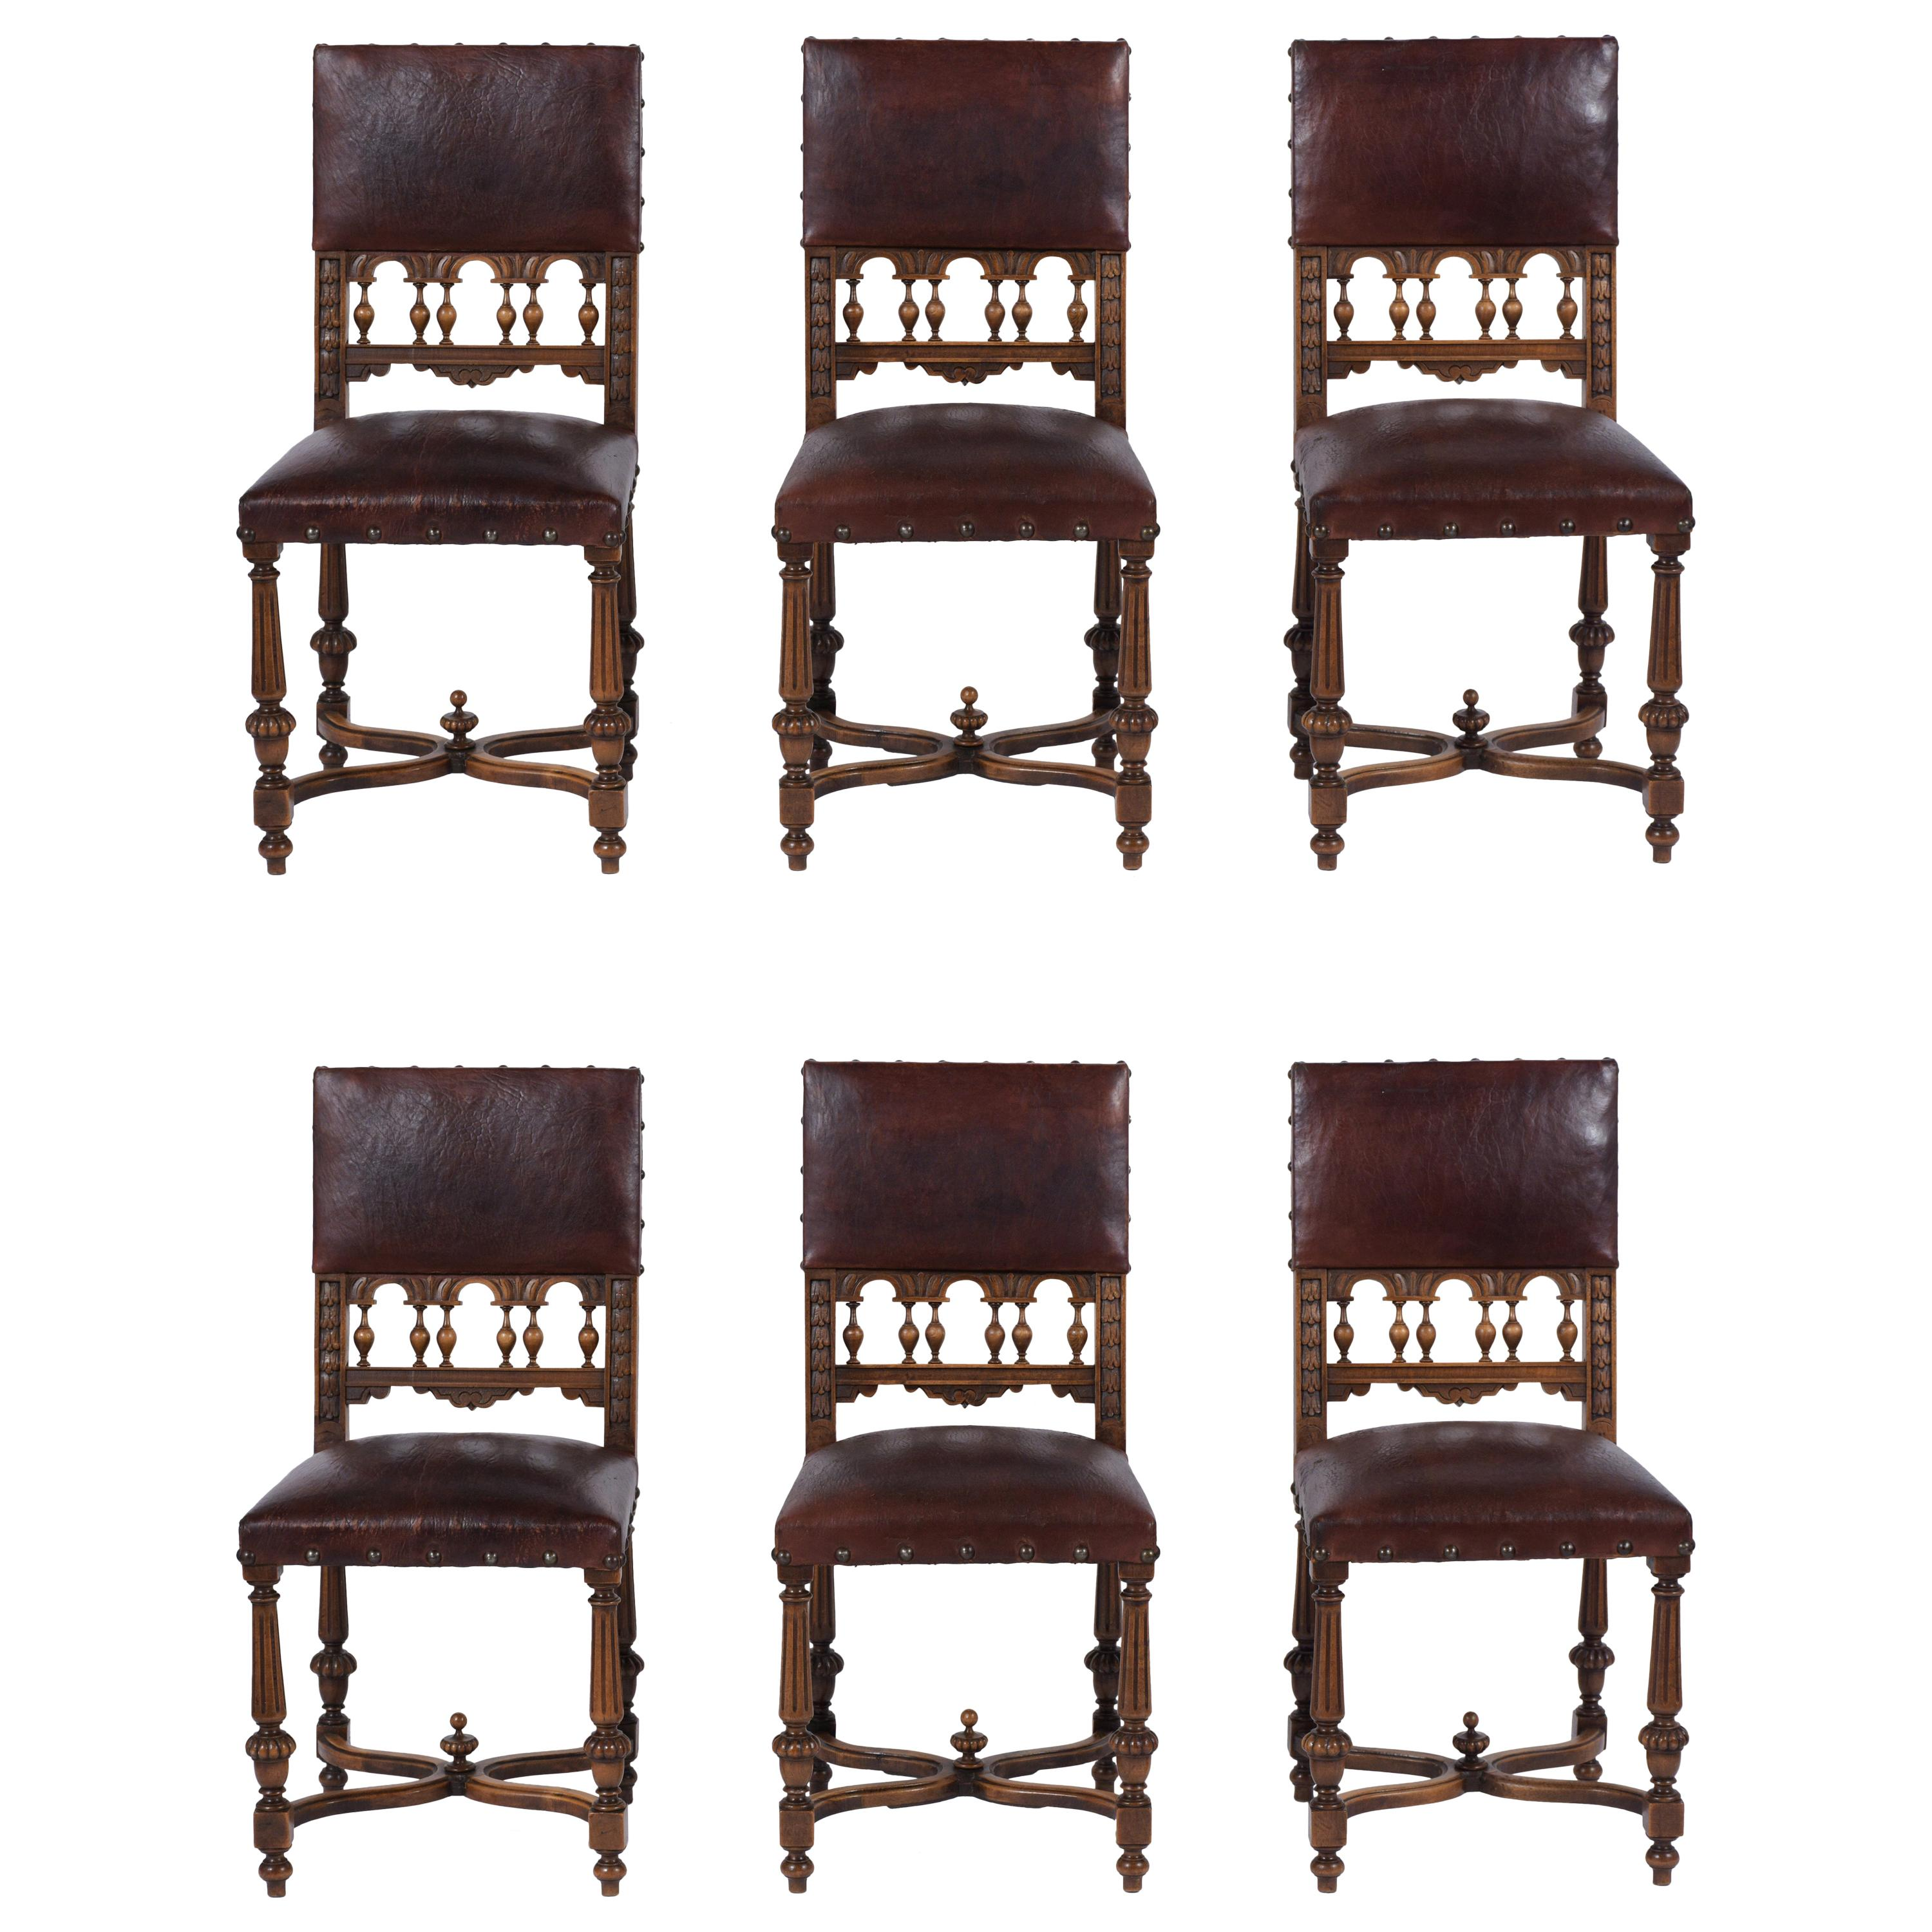 19th Century Leather Dining Chairs